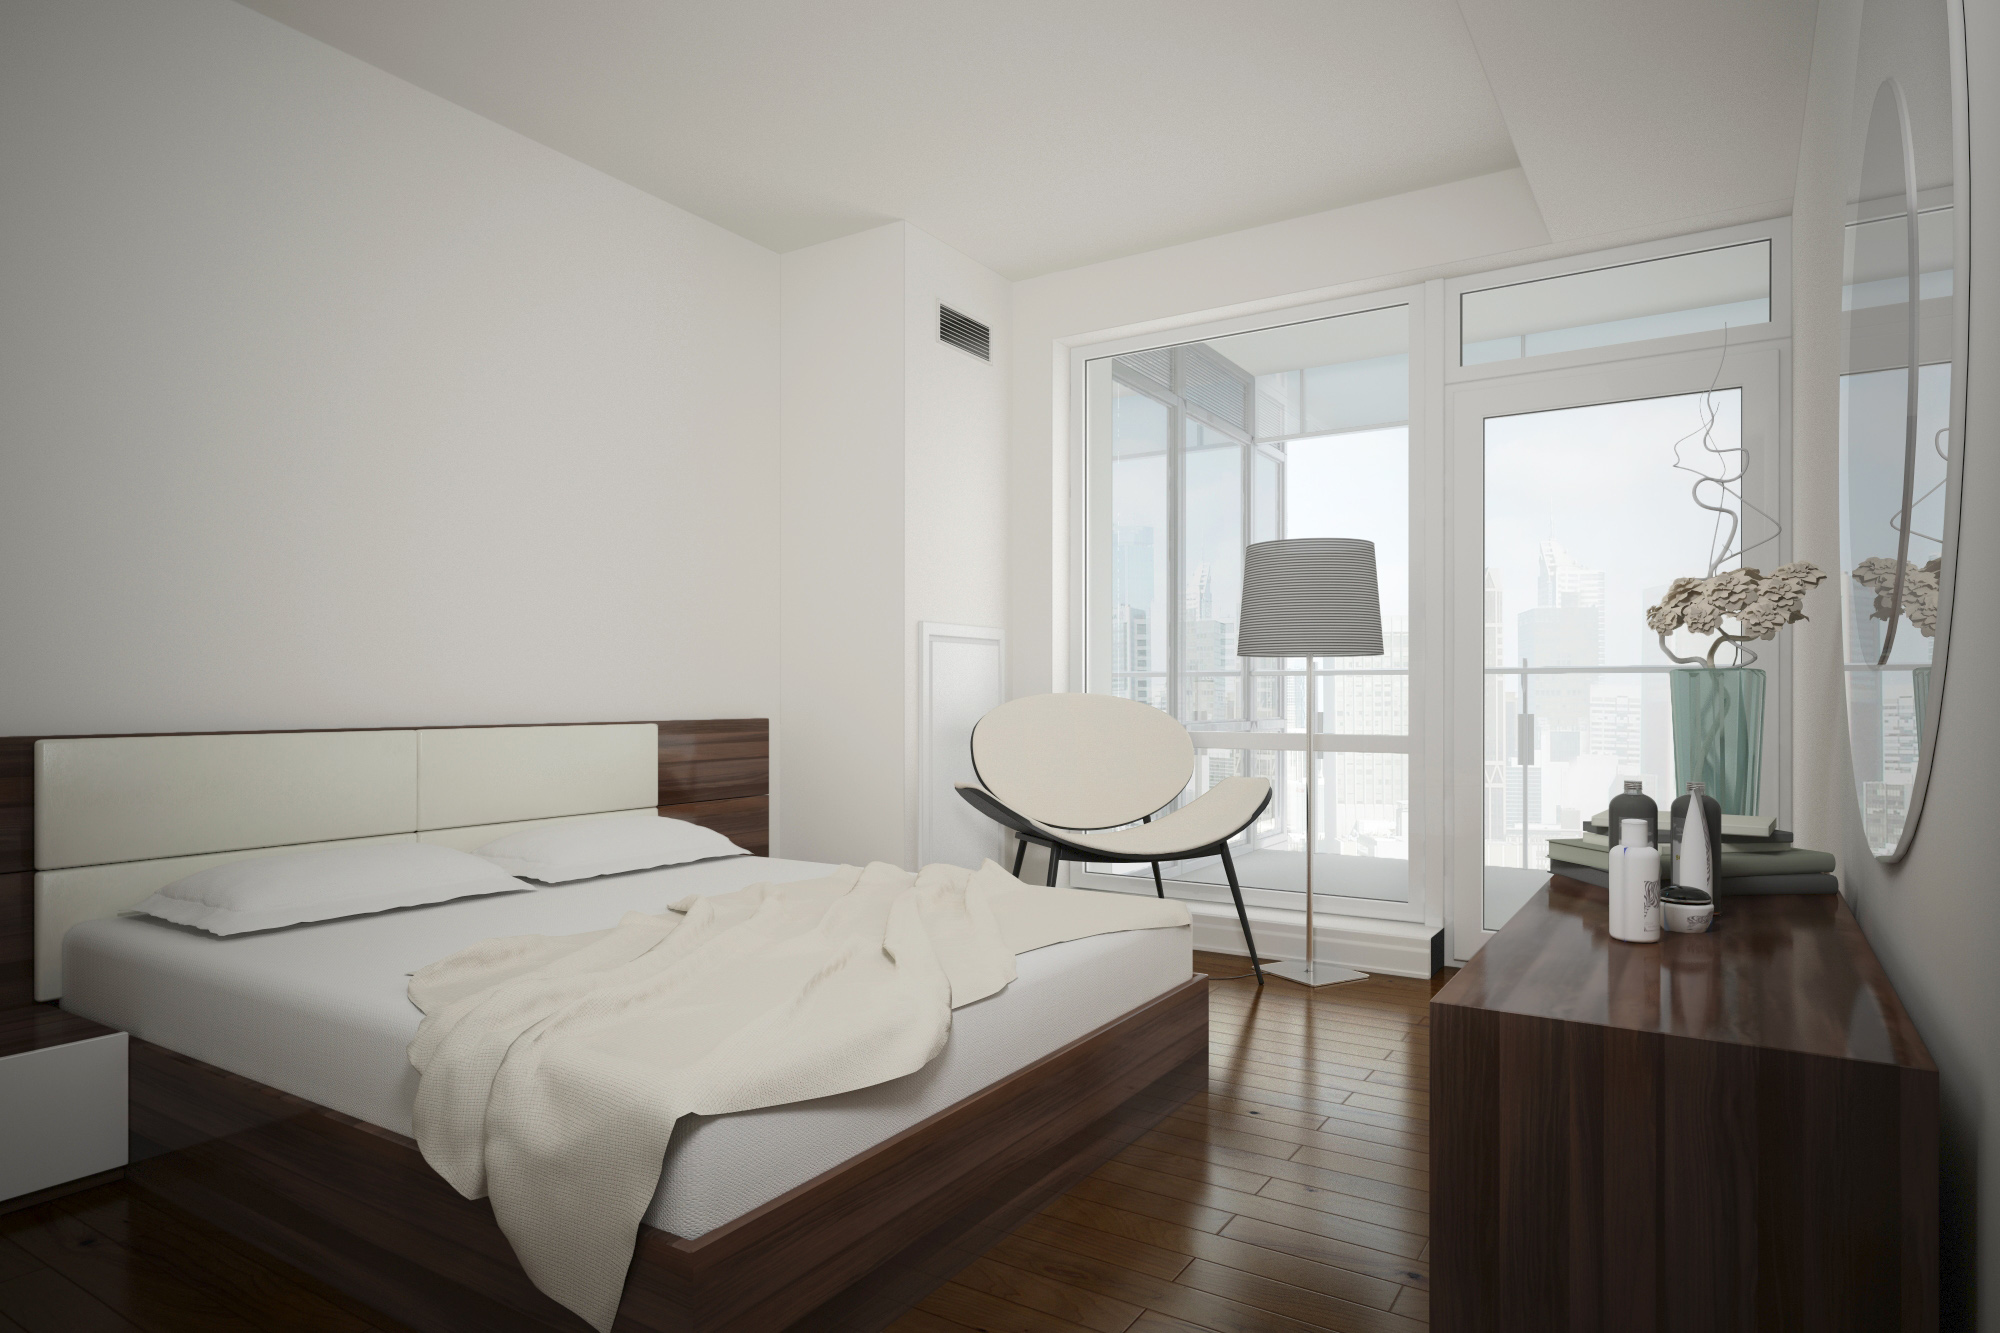 FESTIVAL TOWER CONDOS FOR SALE - TWO BEDROOM SUITES 4